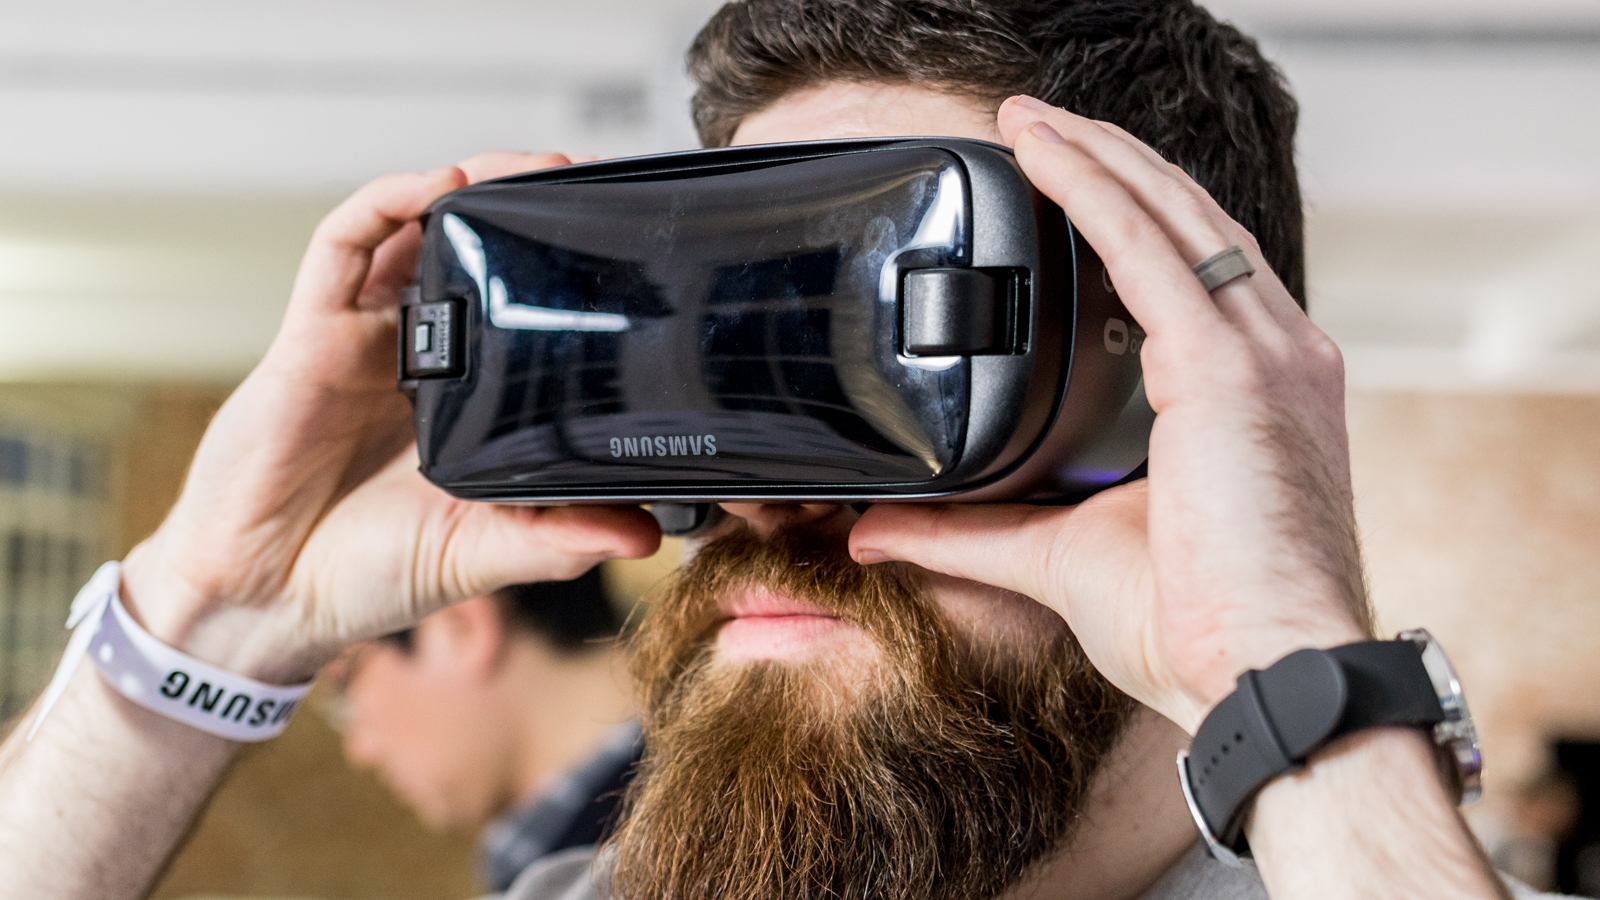 Samsung S Beautifully Designed Galaxy S8 Makes For Better Vr